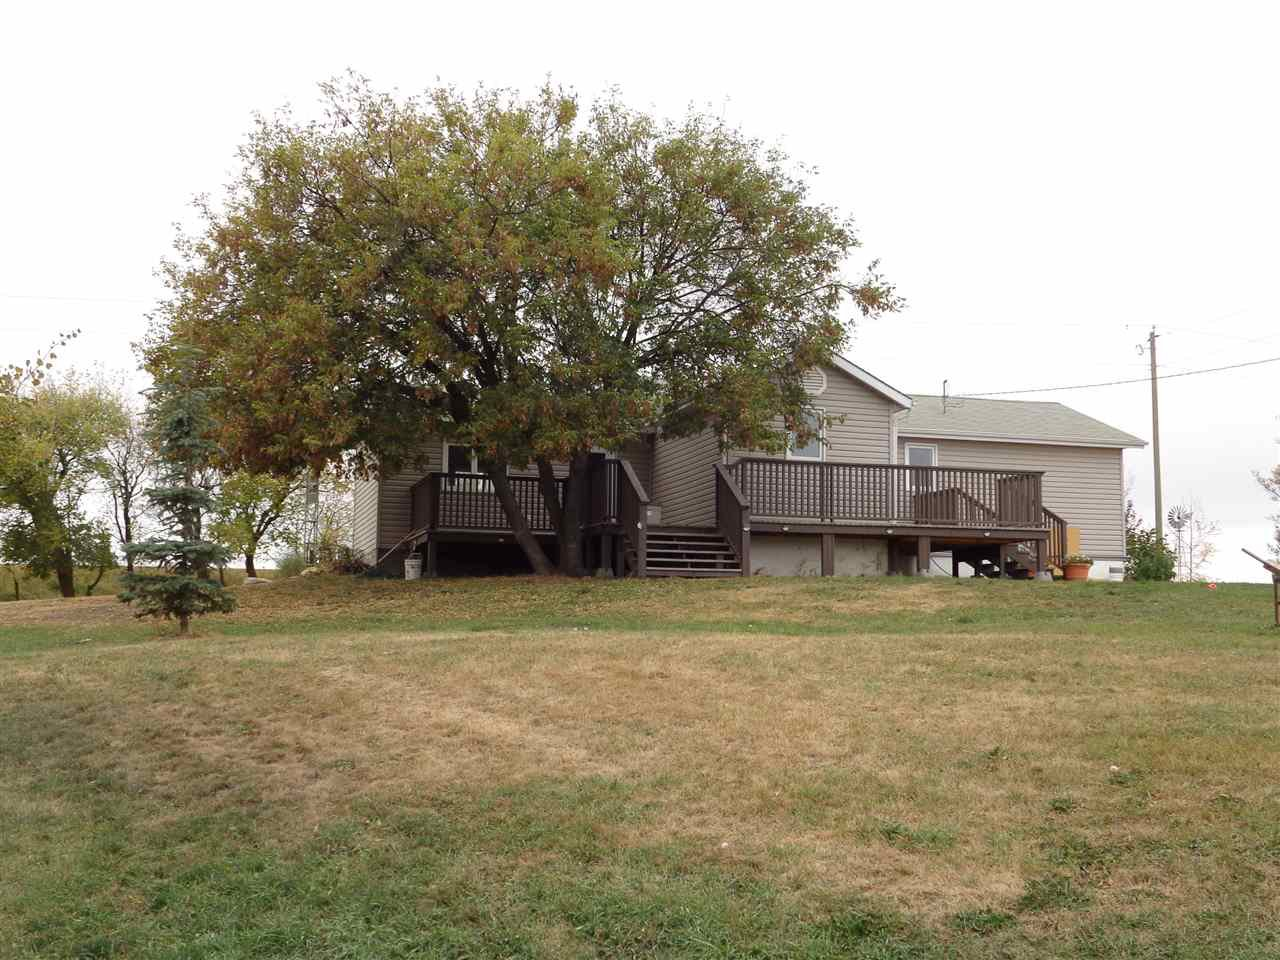 Main Photo: 46119 RR 124: Rural Beaver County House for sale : MLS®# E4191971